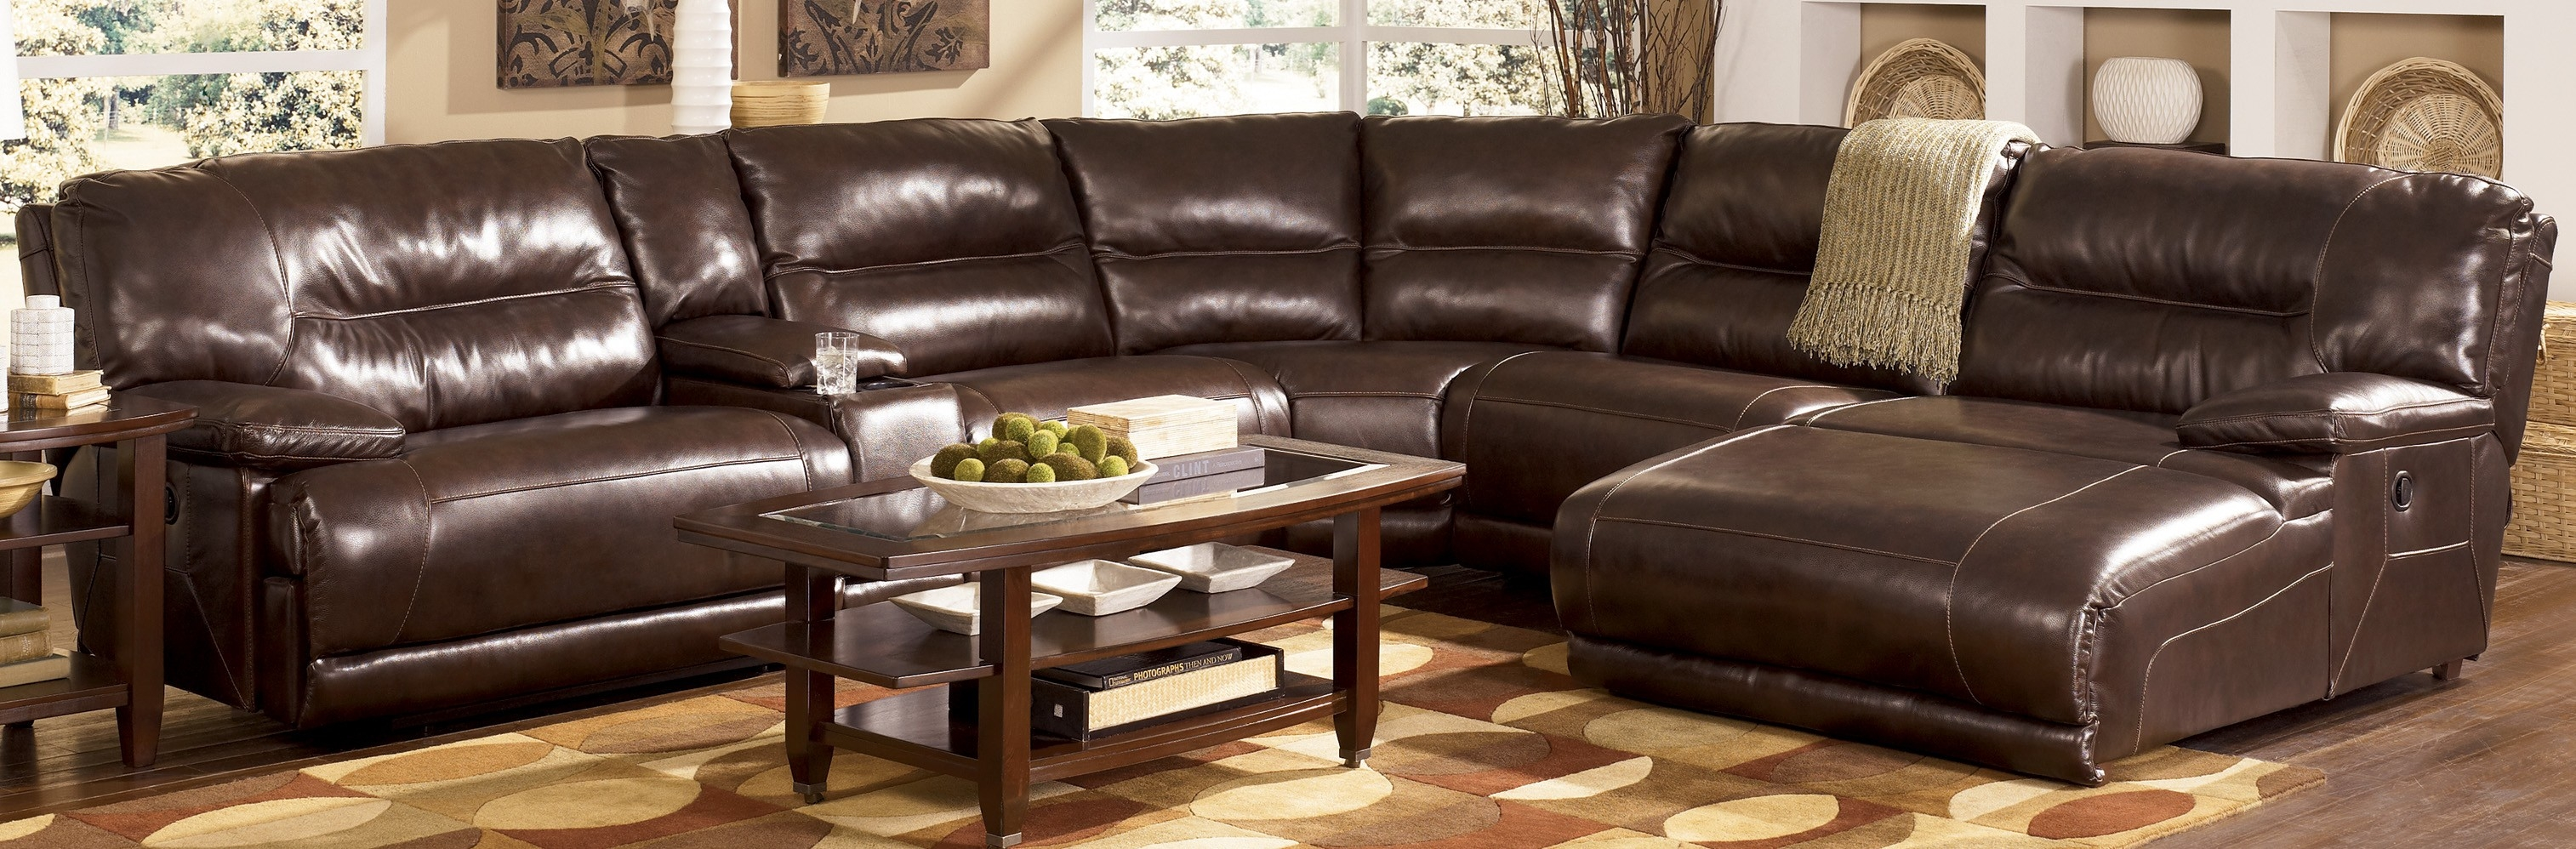 8 piece leather sectional sofa black chesterfield second hand 12 best collection of 6